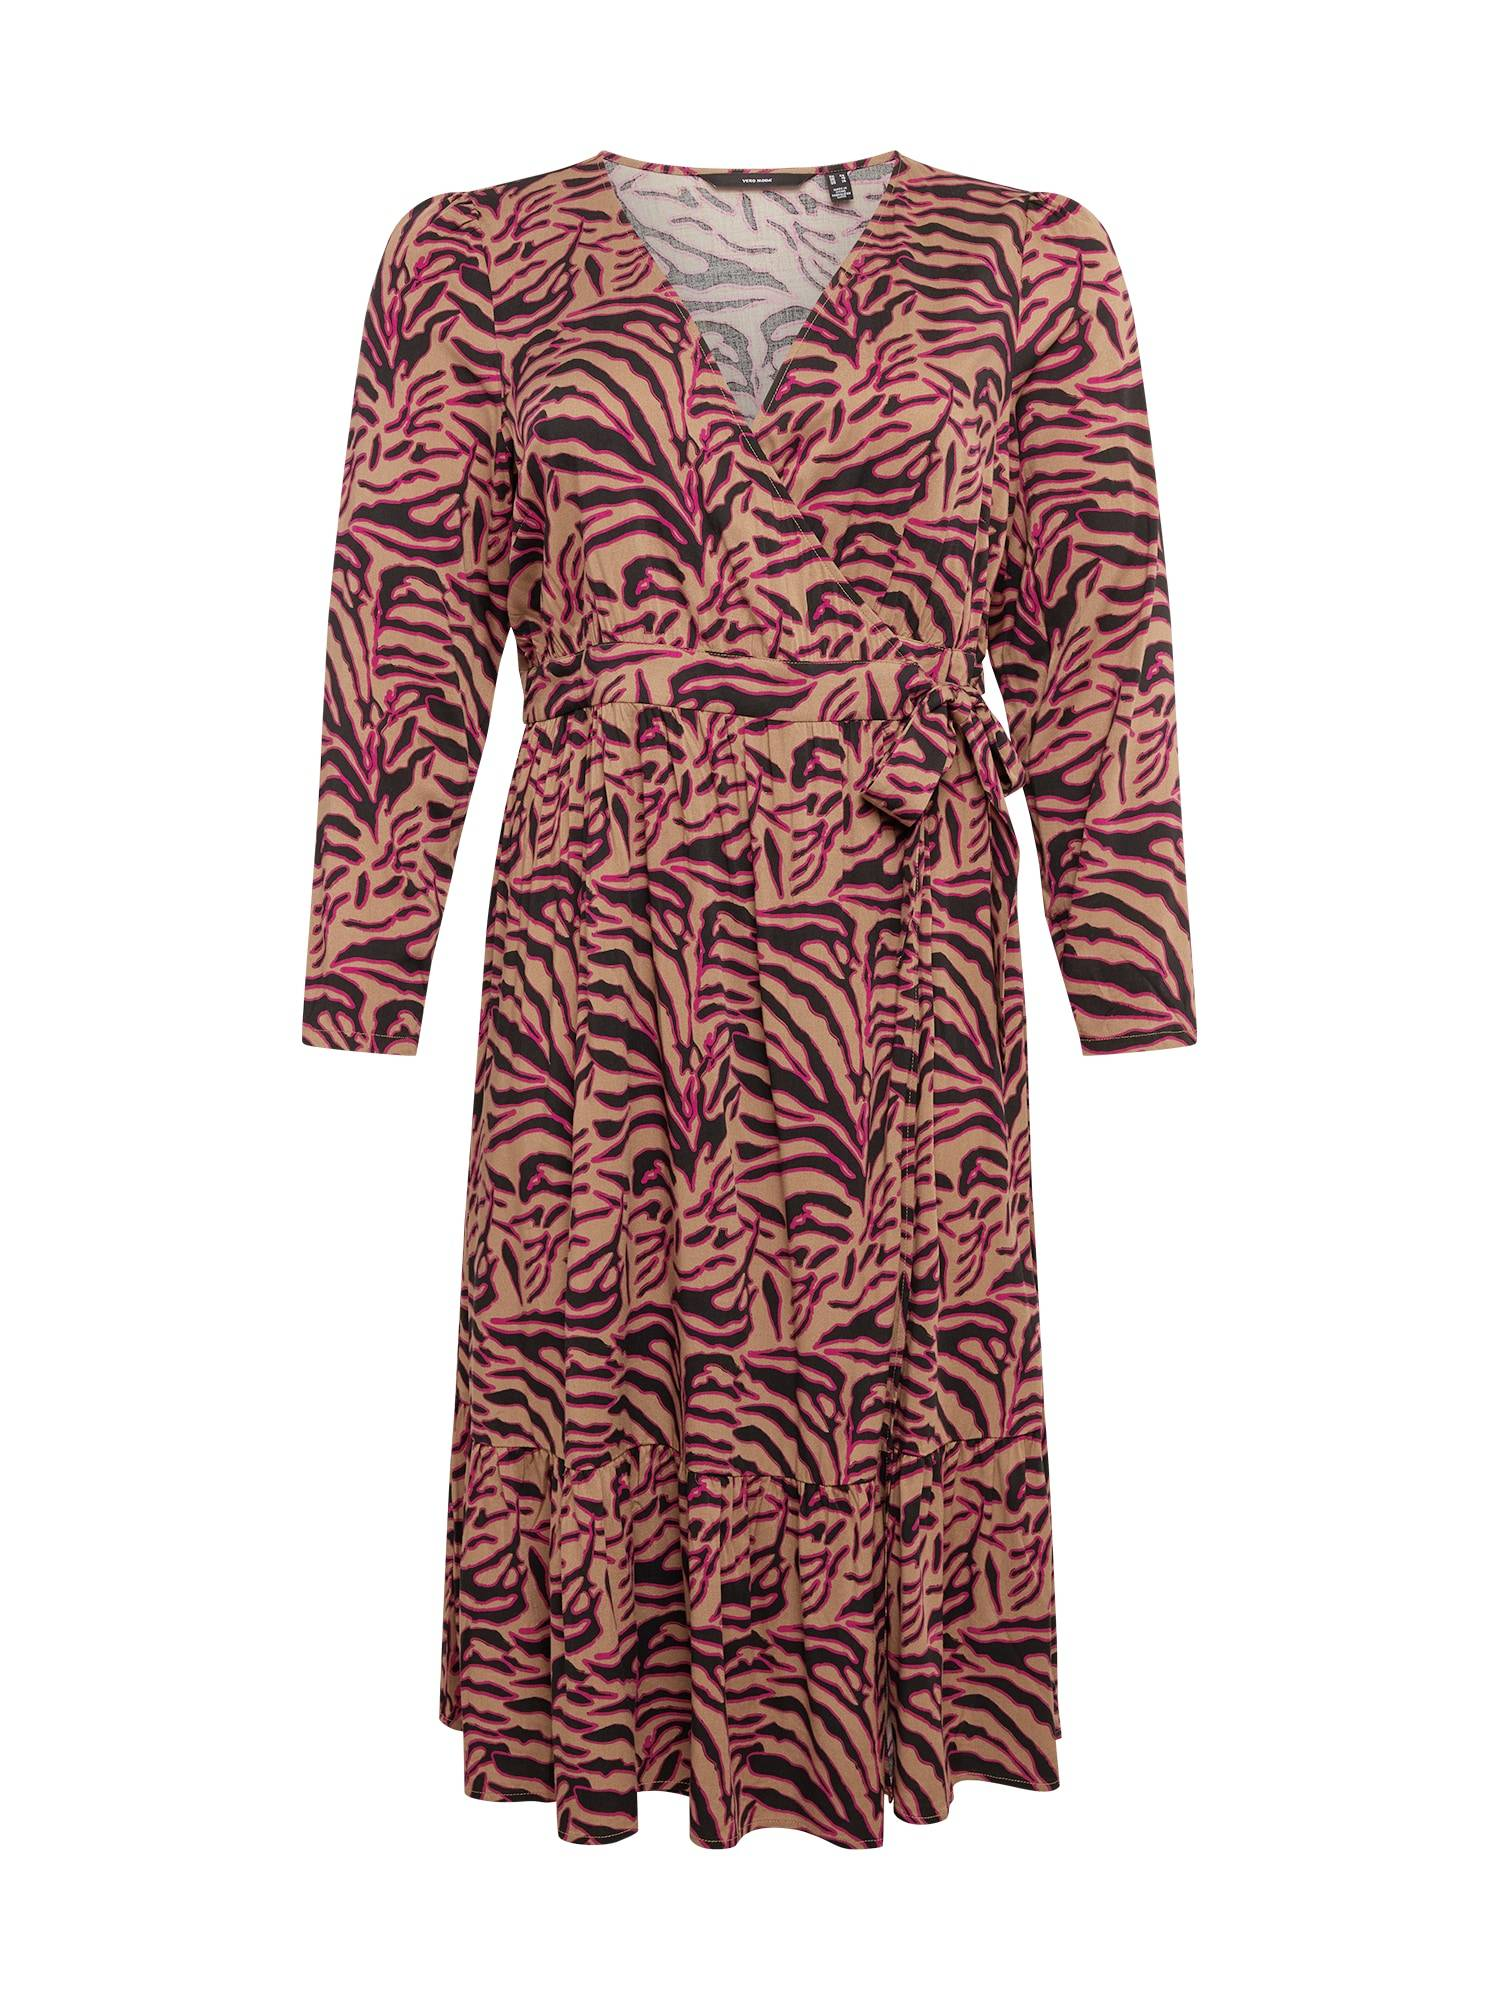 Vero Moda Curve Robe  - Rose - Taille: 46 - female